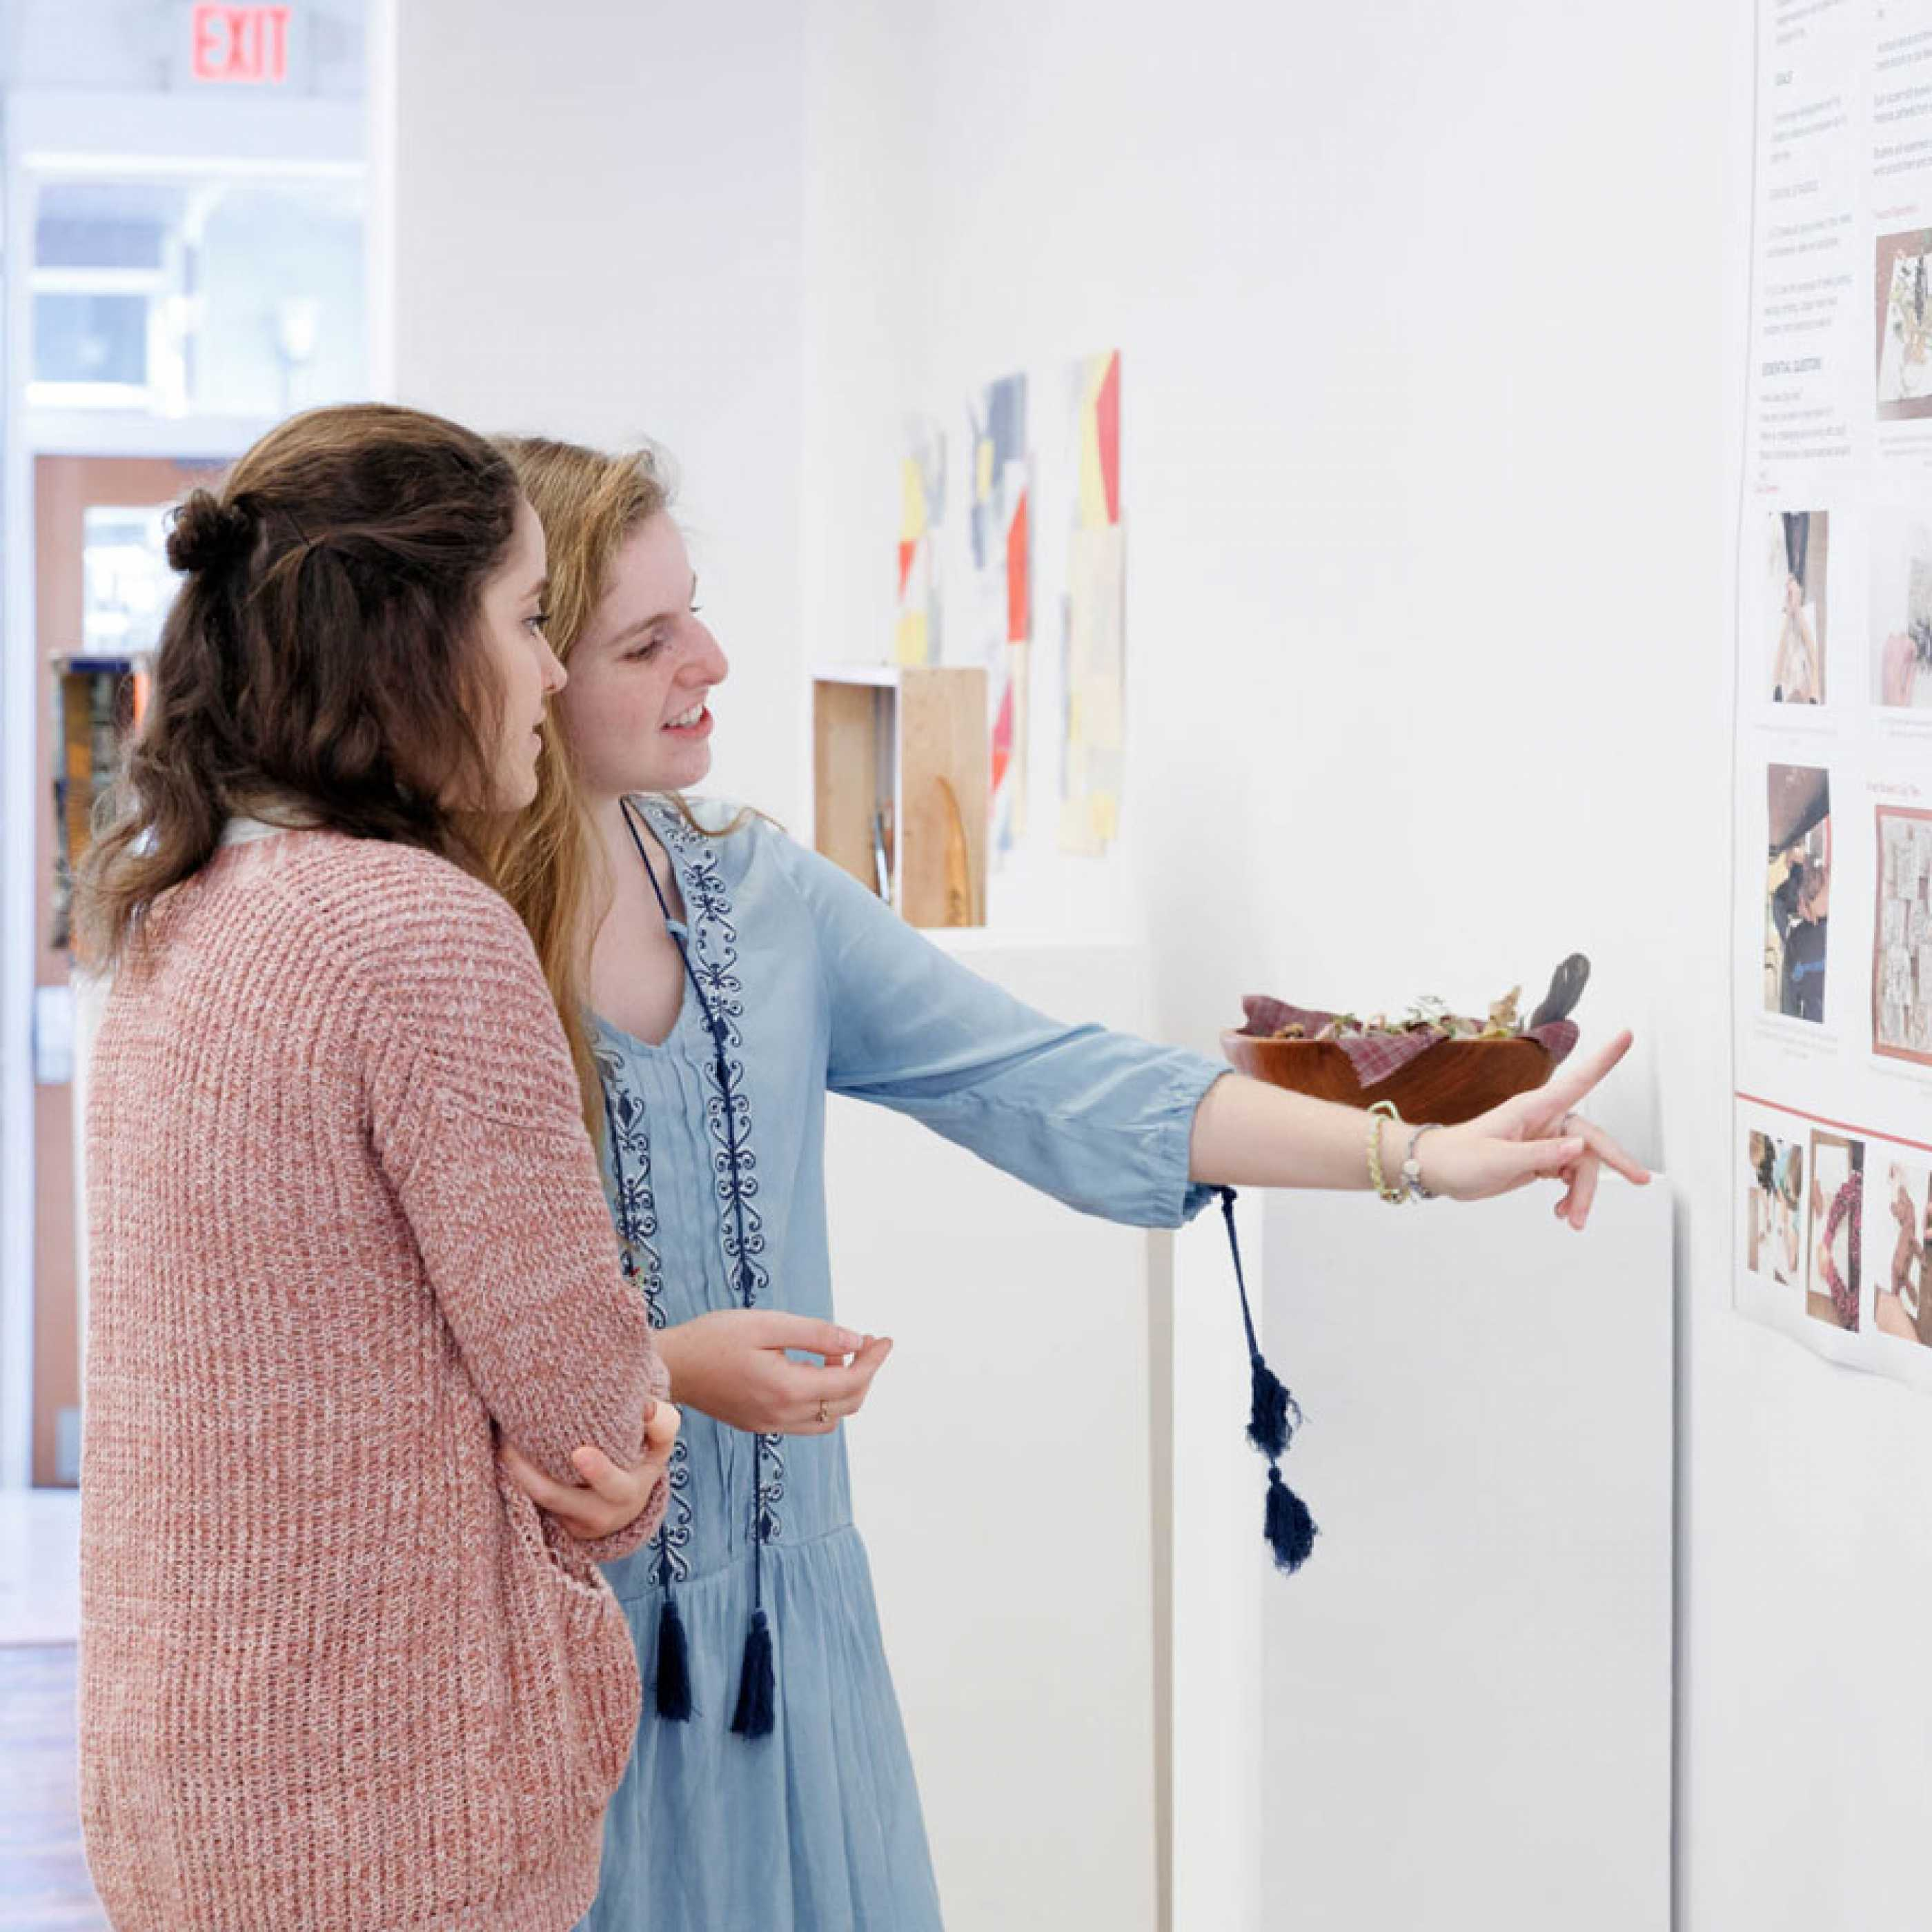 Art Education students viewing research posters